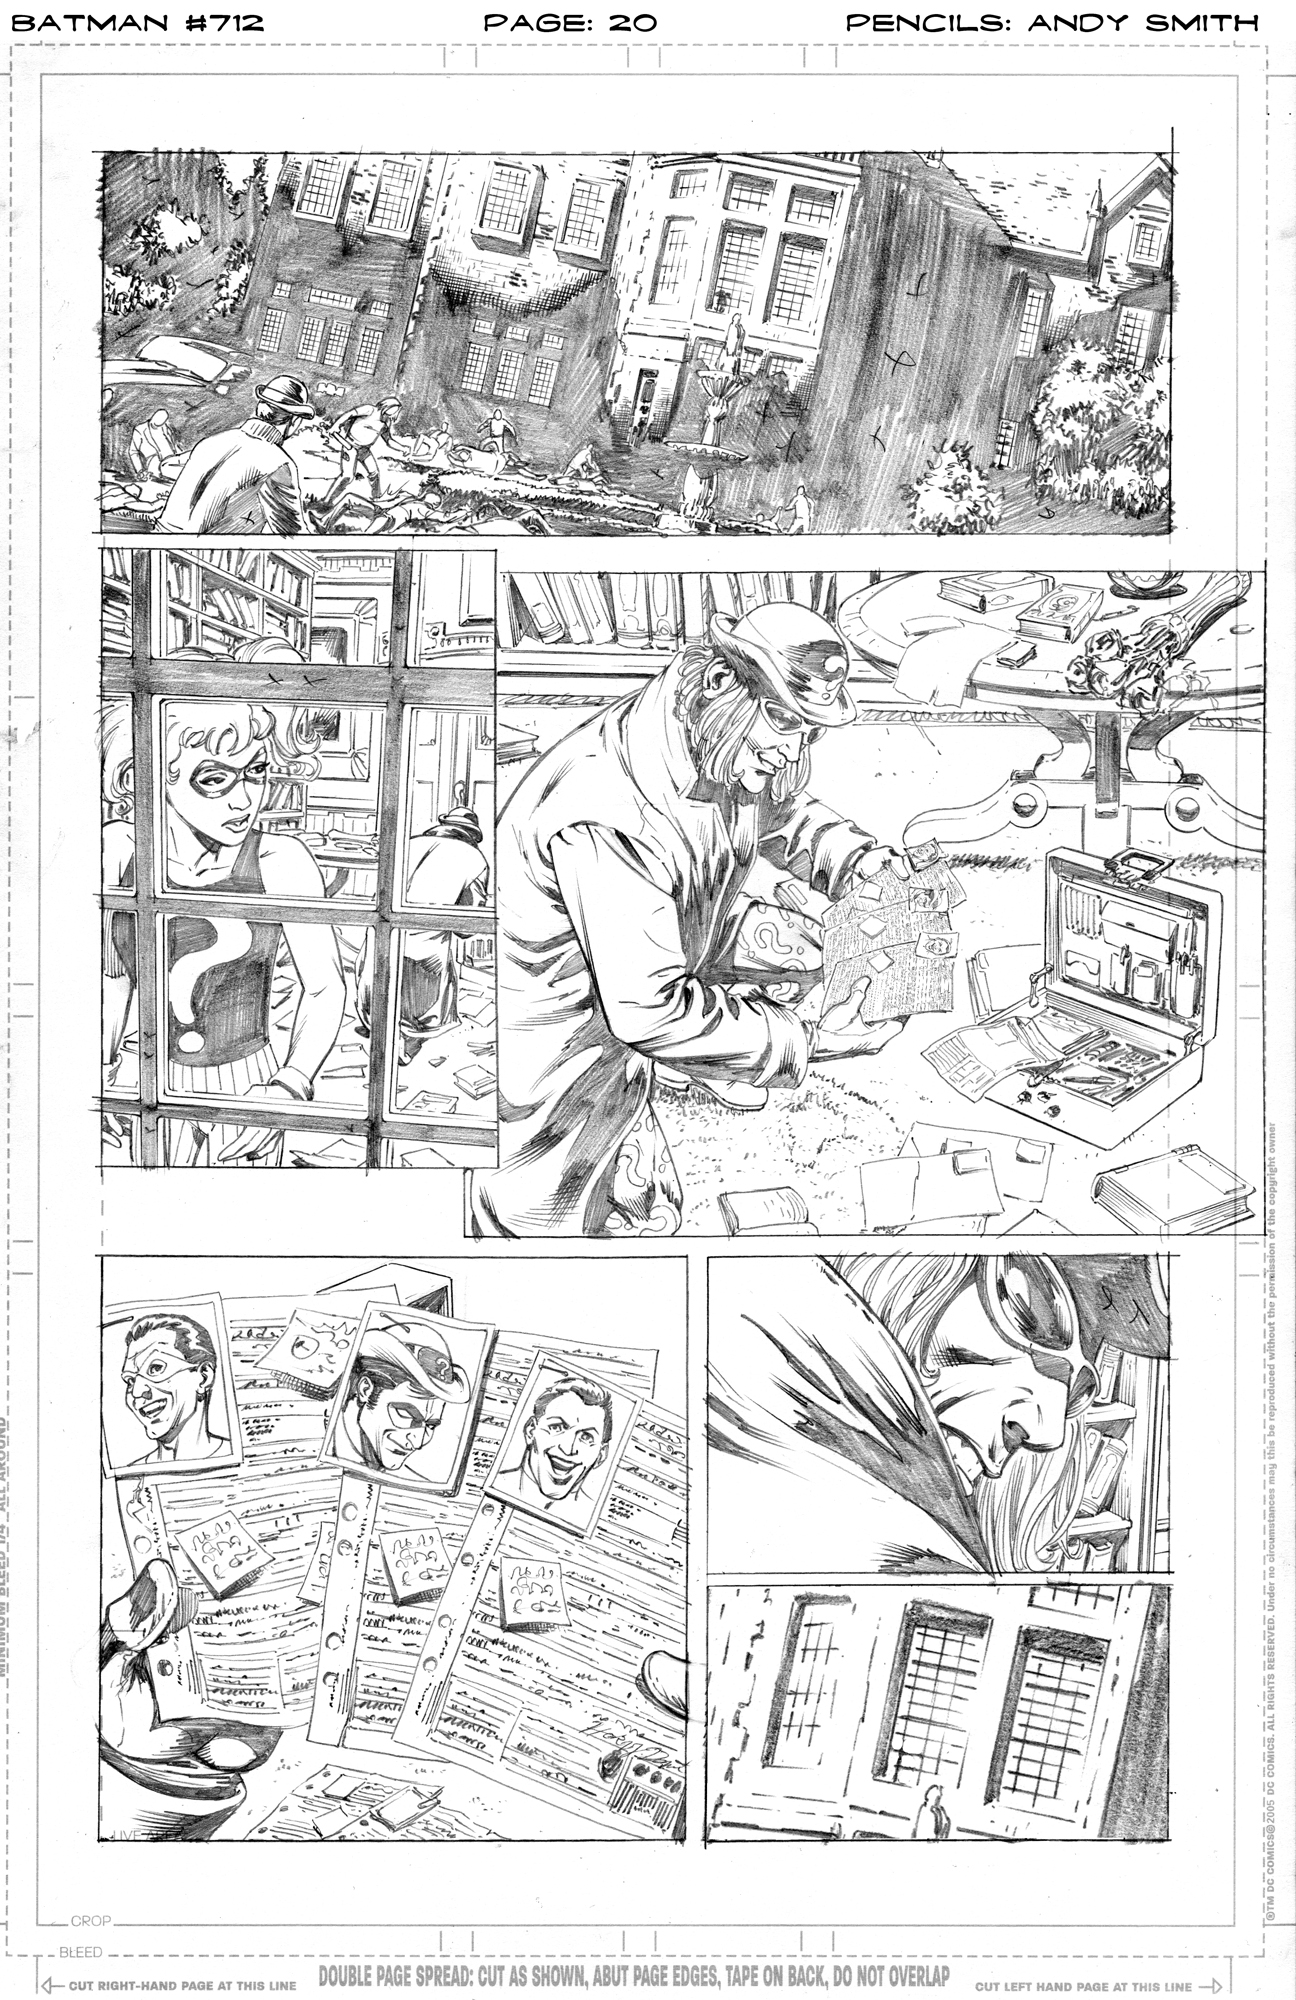 Batman 712 page 20 pencils